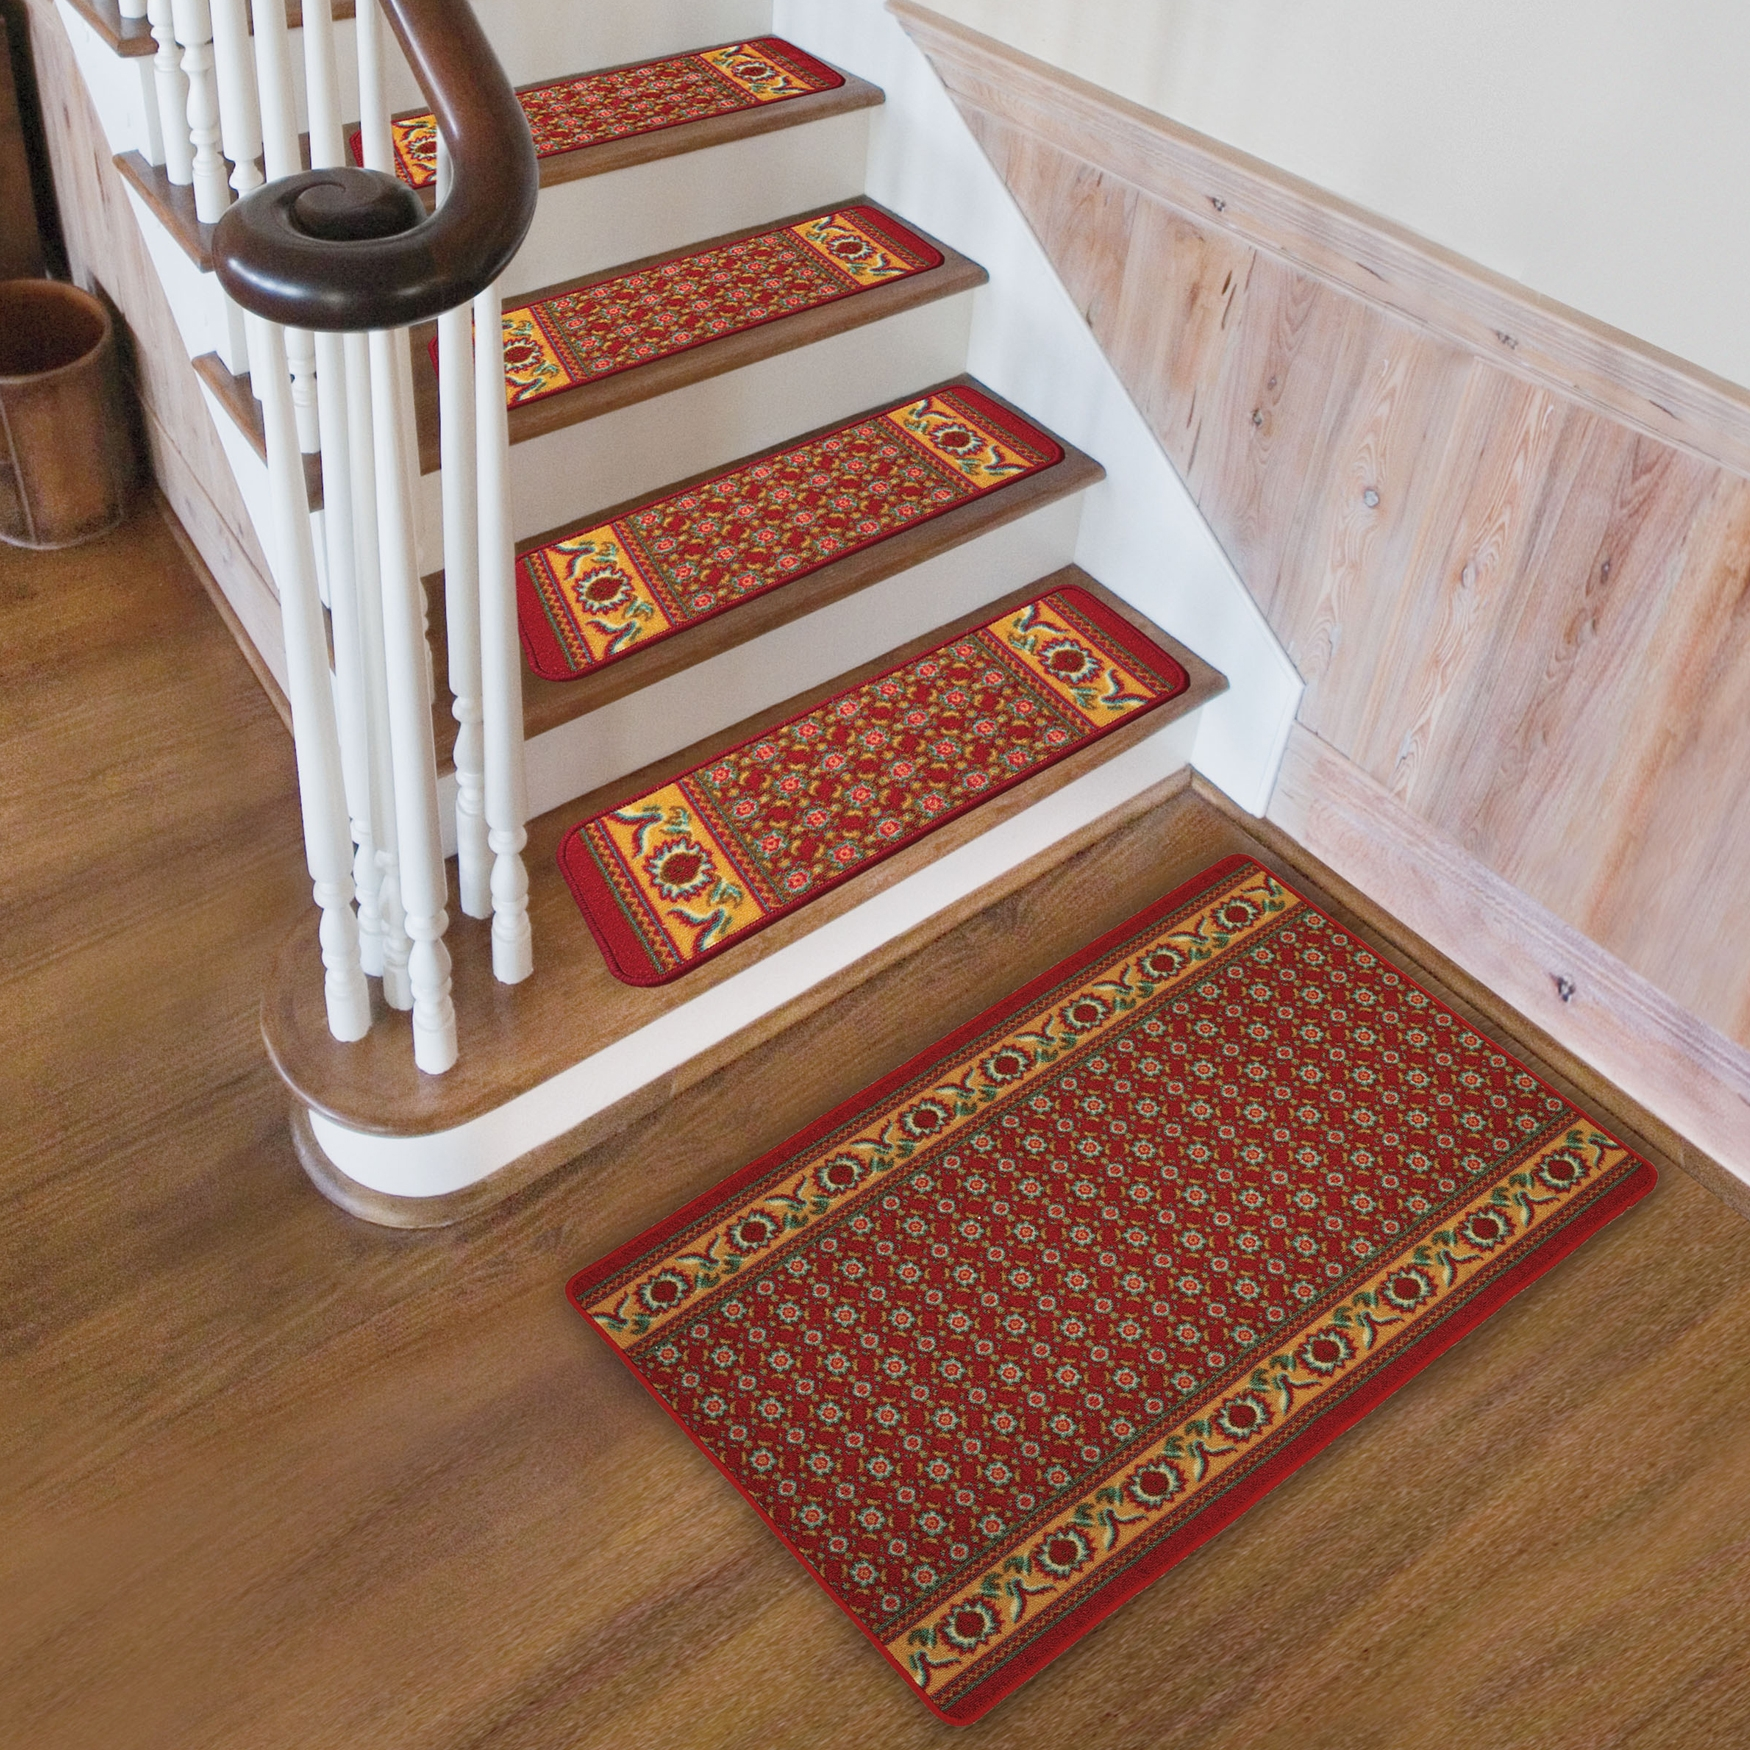 Decor Carpet Stair Protectors Stair Treads Carpet Within Stair Tread Carpet Protectors (Image 8 of 15)